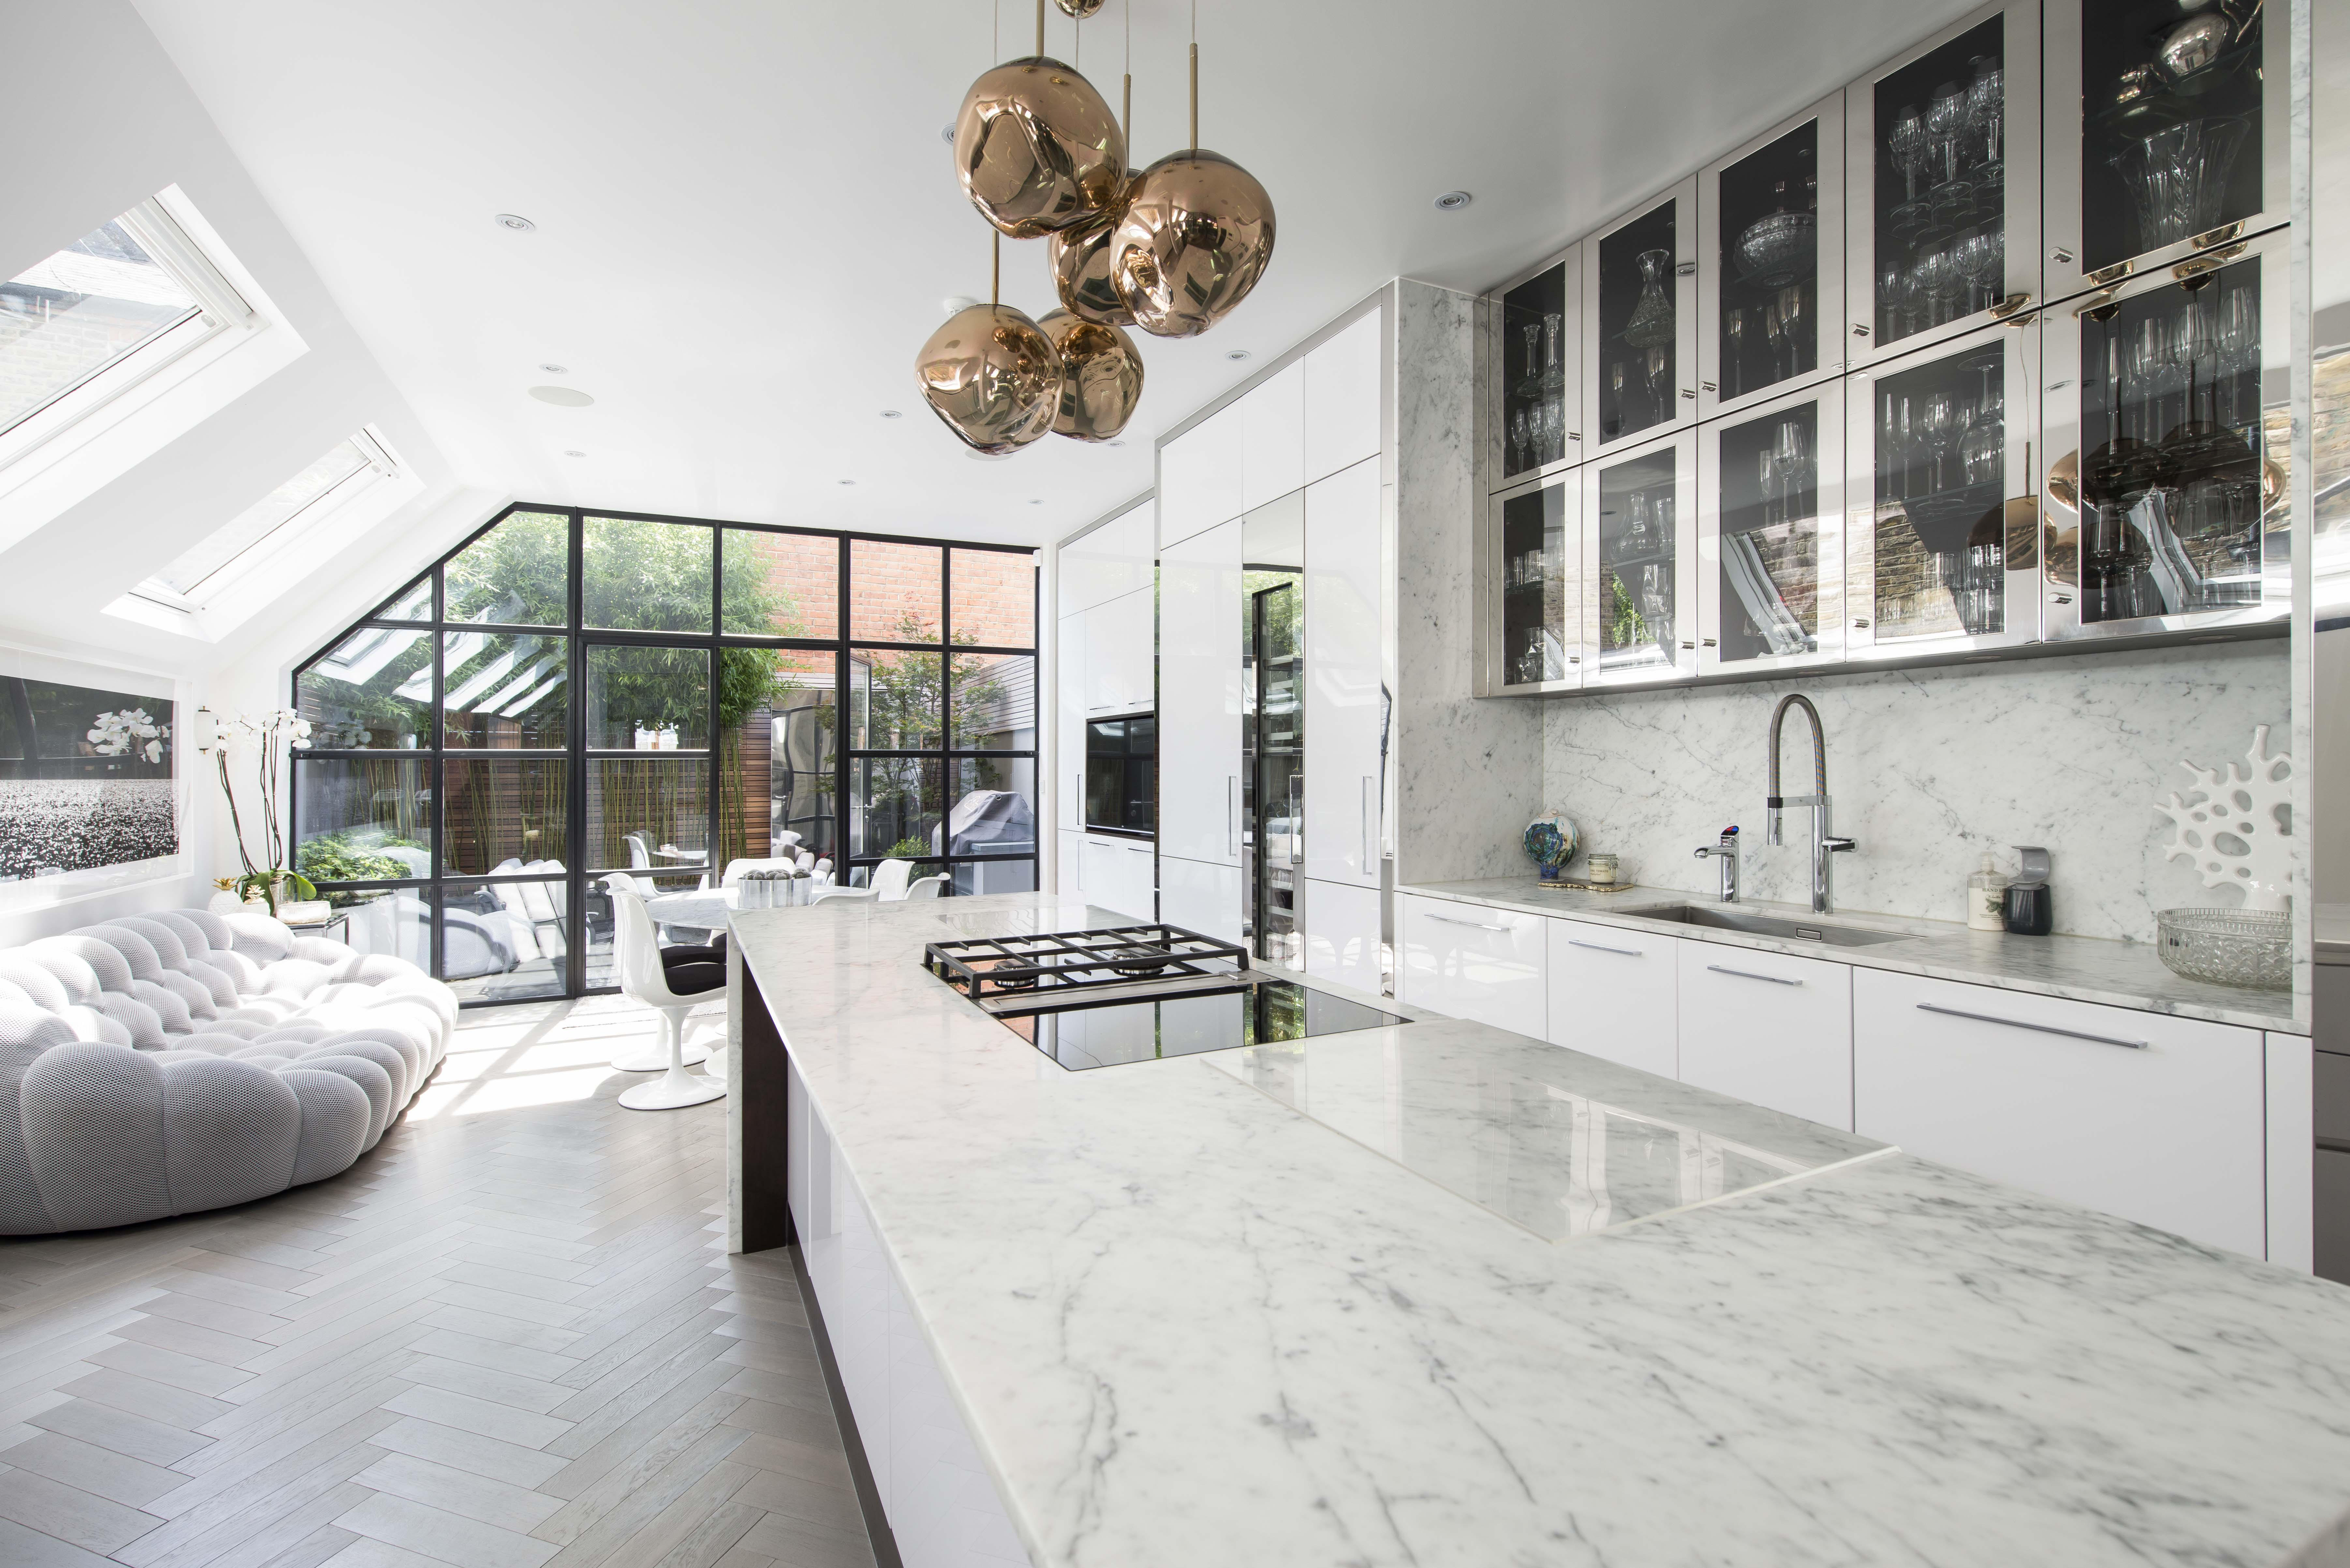 28 luxury kitchen design ideas wed copy if money were no object real homes